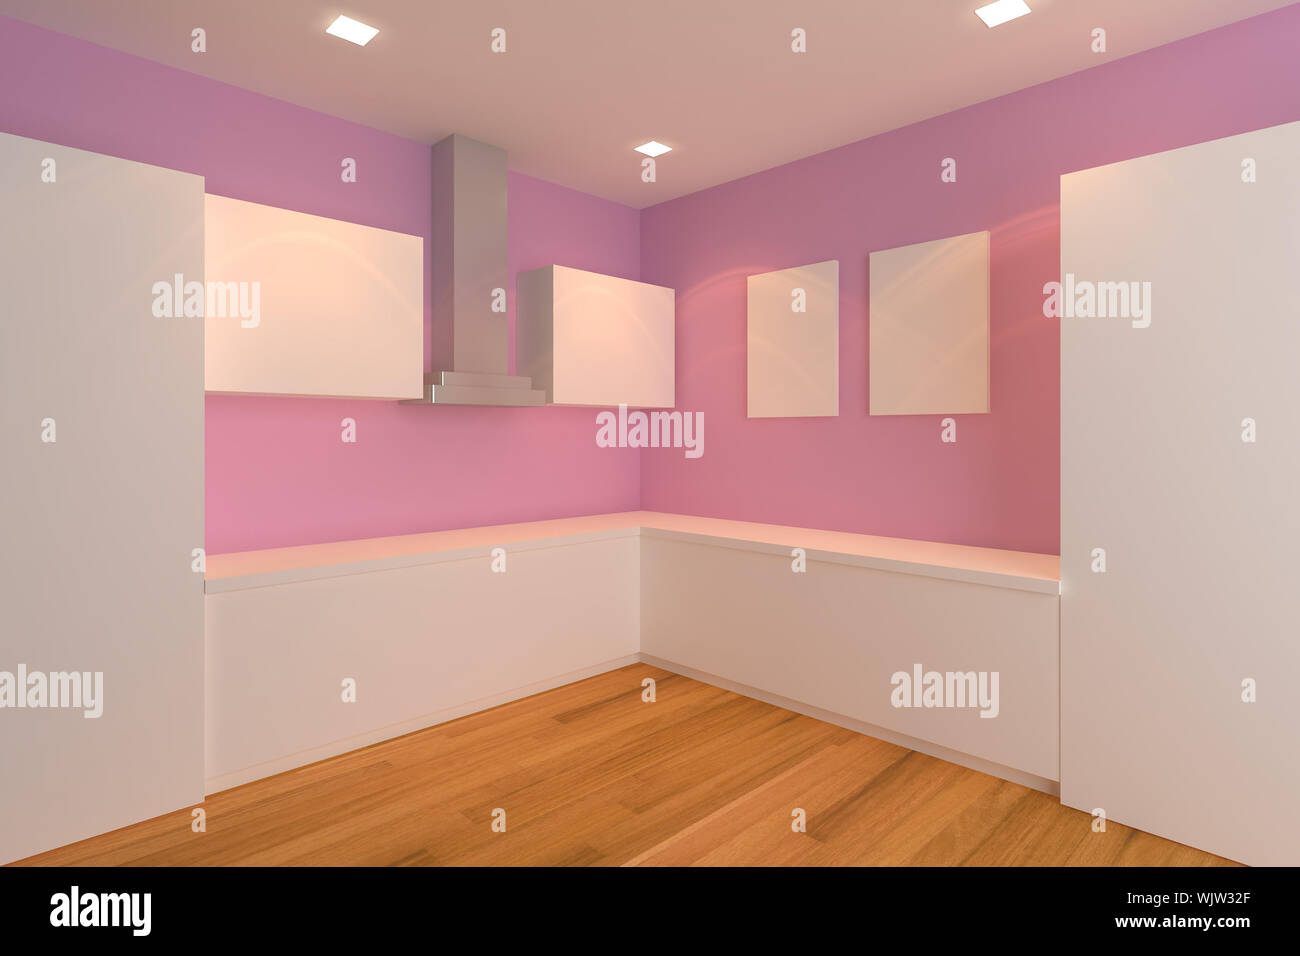 Empty Interior Design For Kitchen Room With Pink Wall Stock Photo Alamy